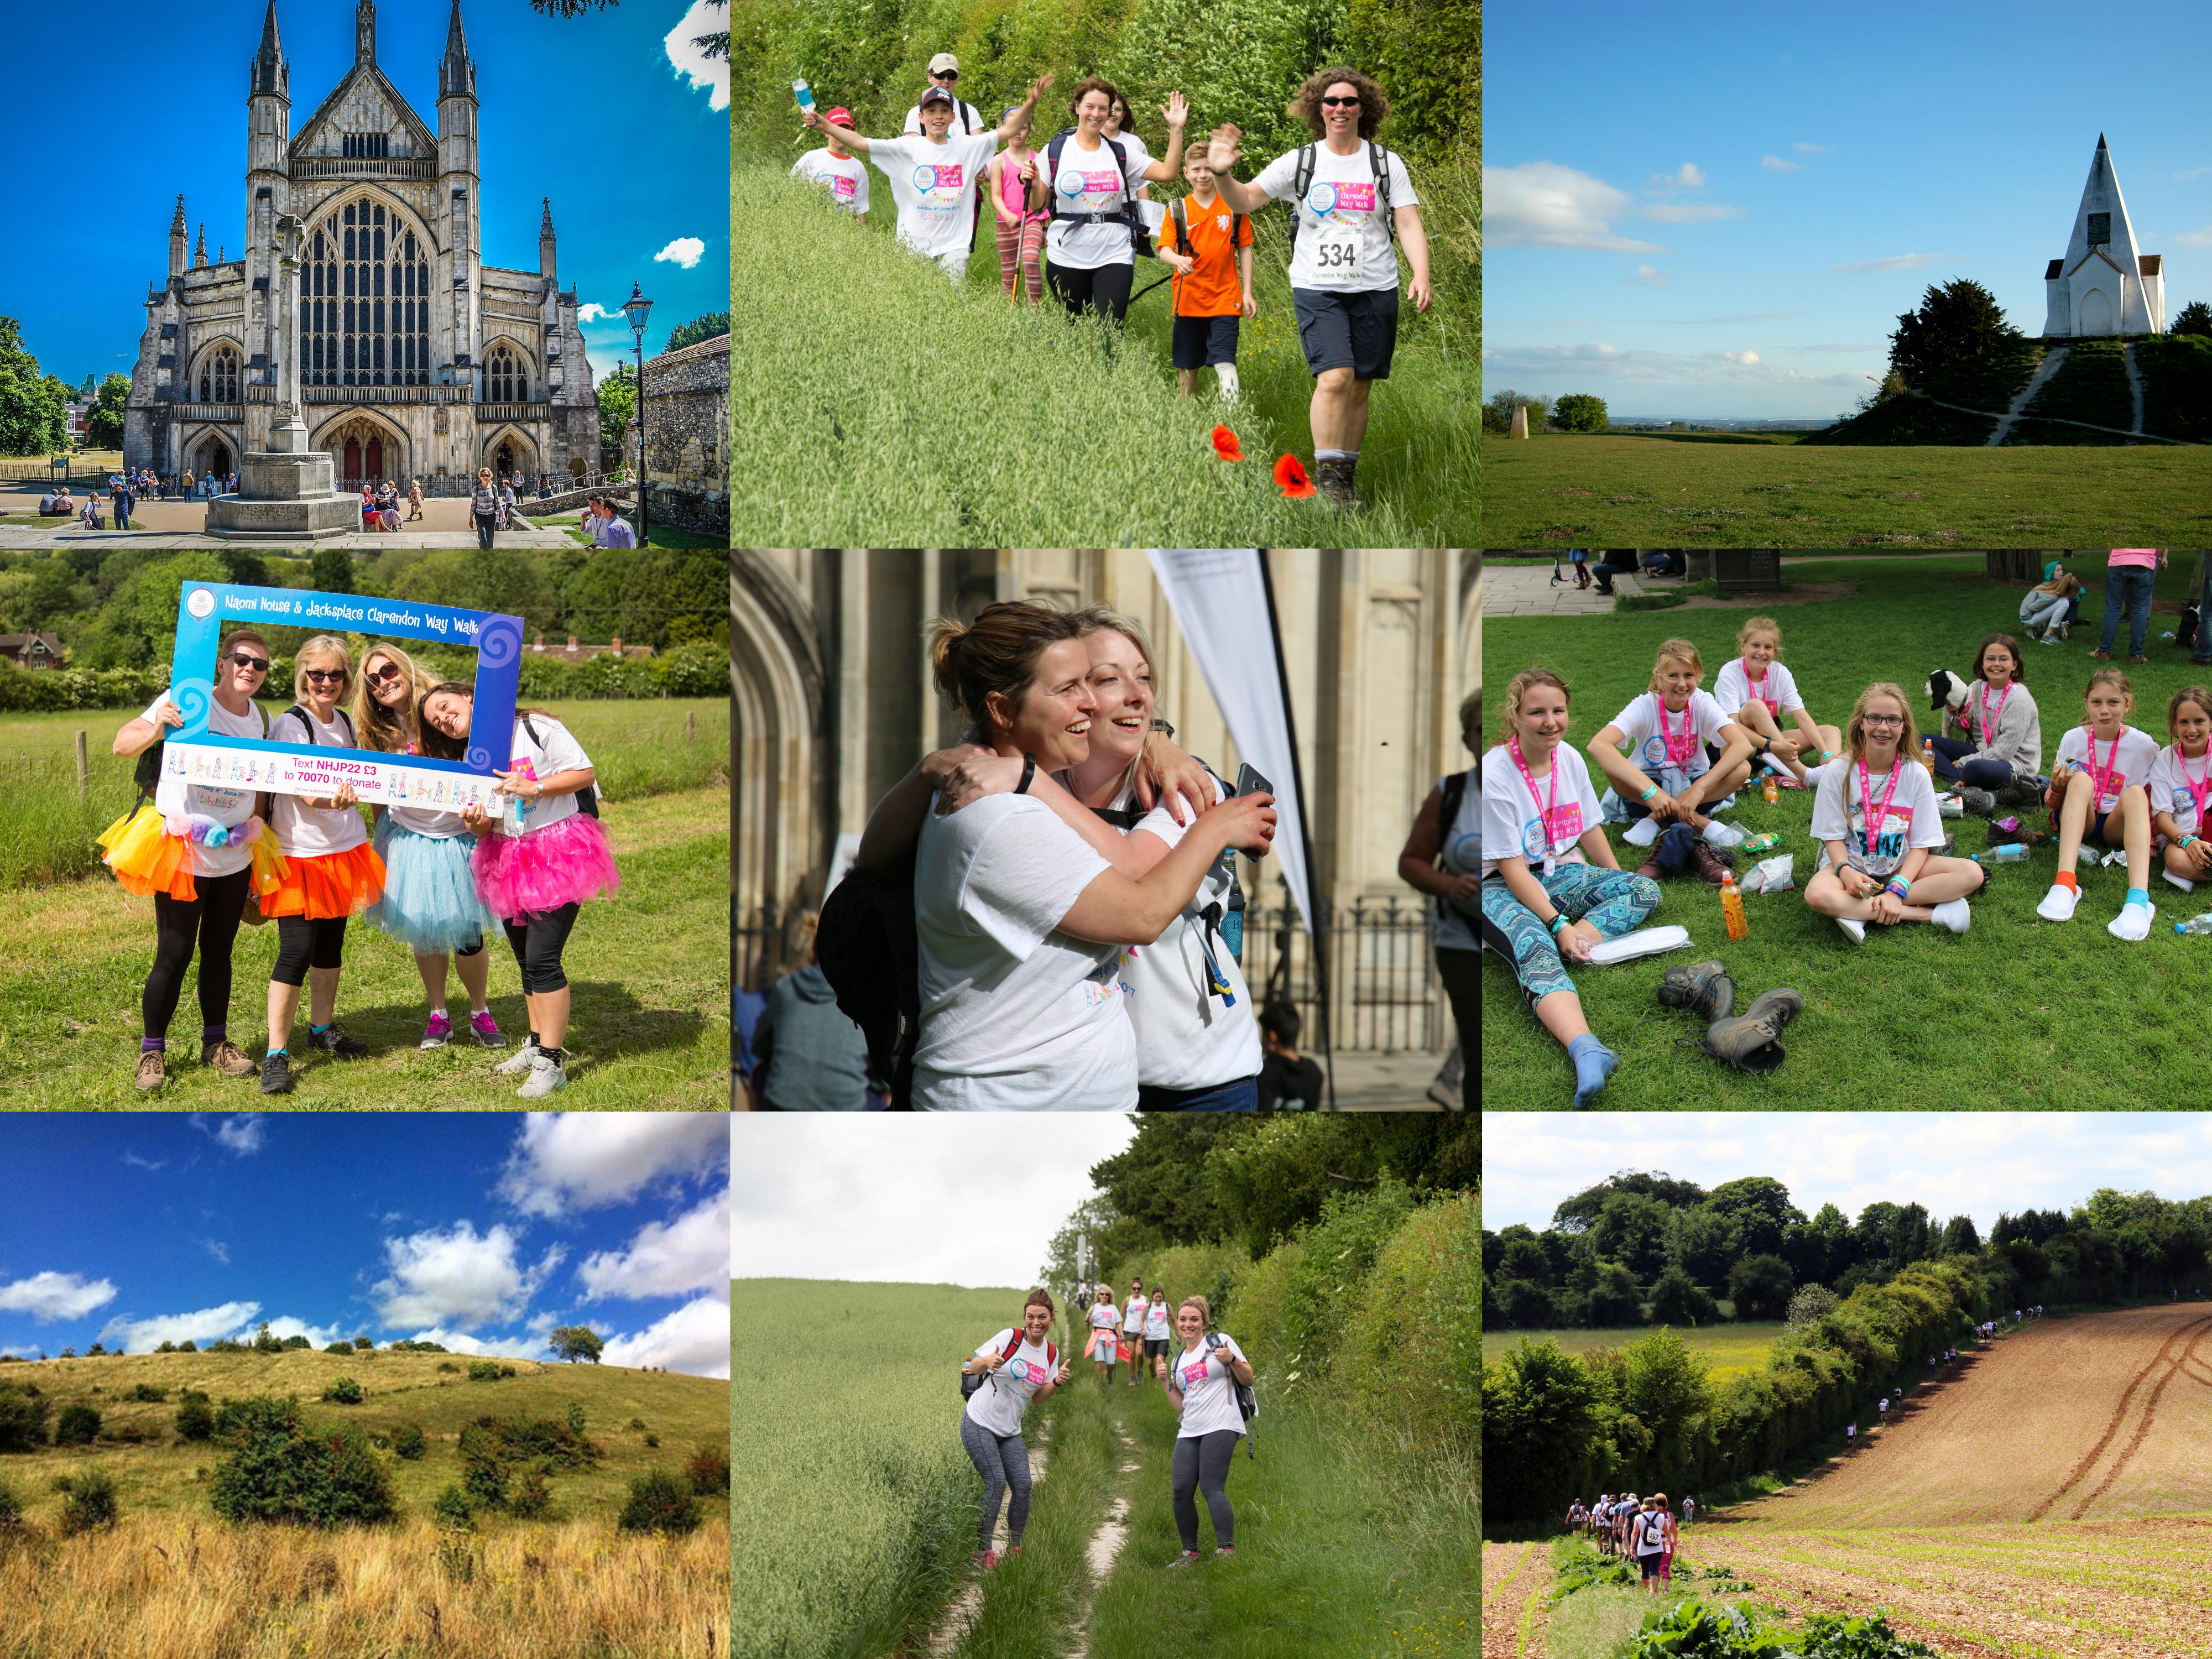 Clarendon collage people and countryside.jpg